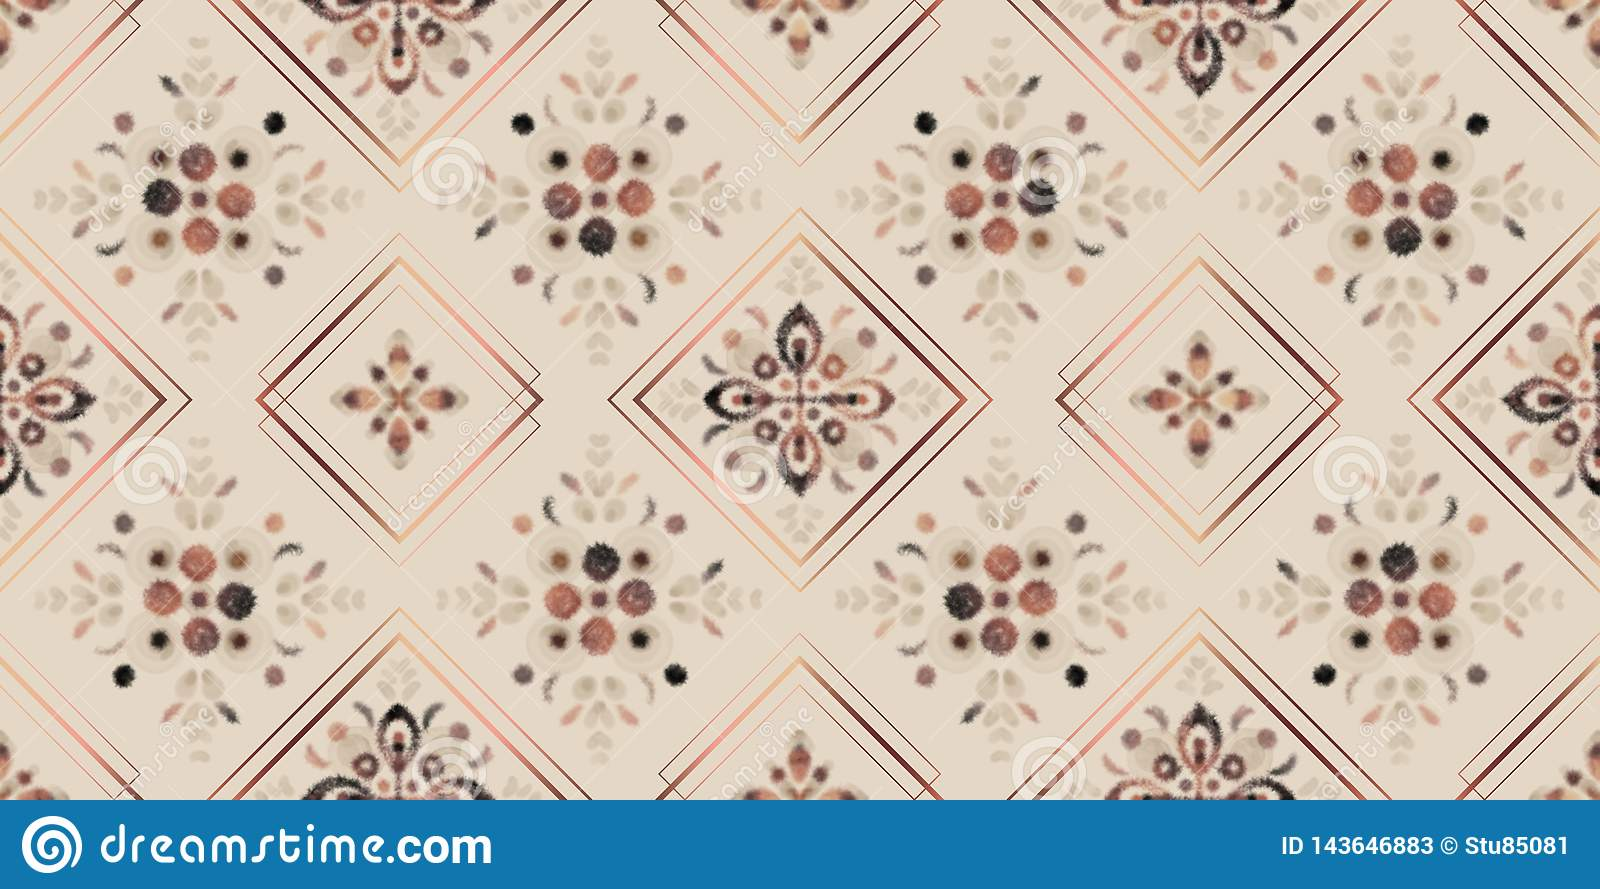 Earth tones seamless pattern, digital watercolor floral mosaic with rose gold square frames